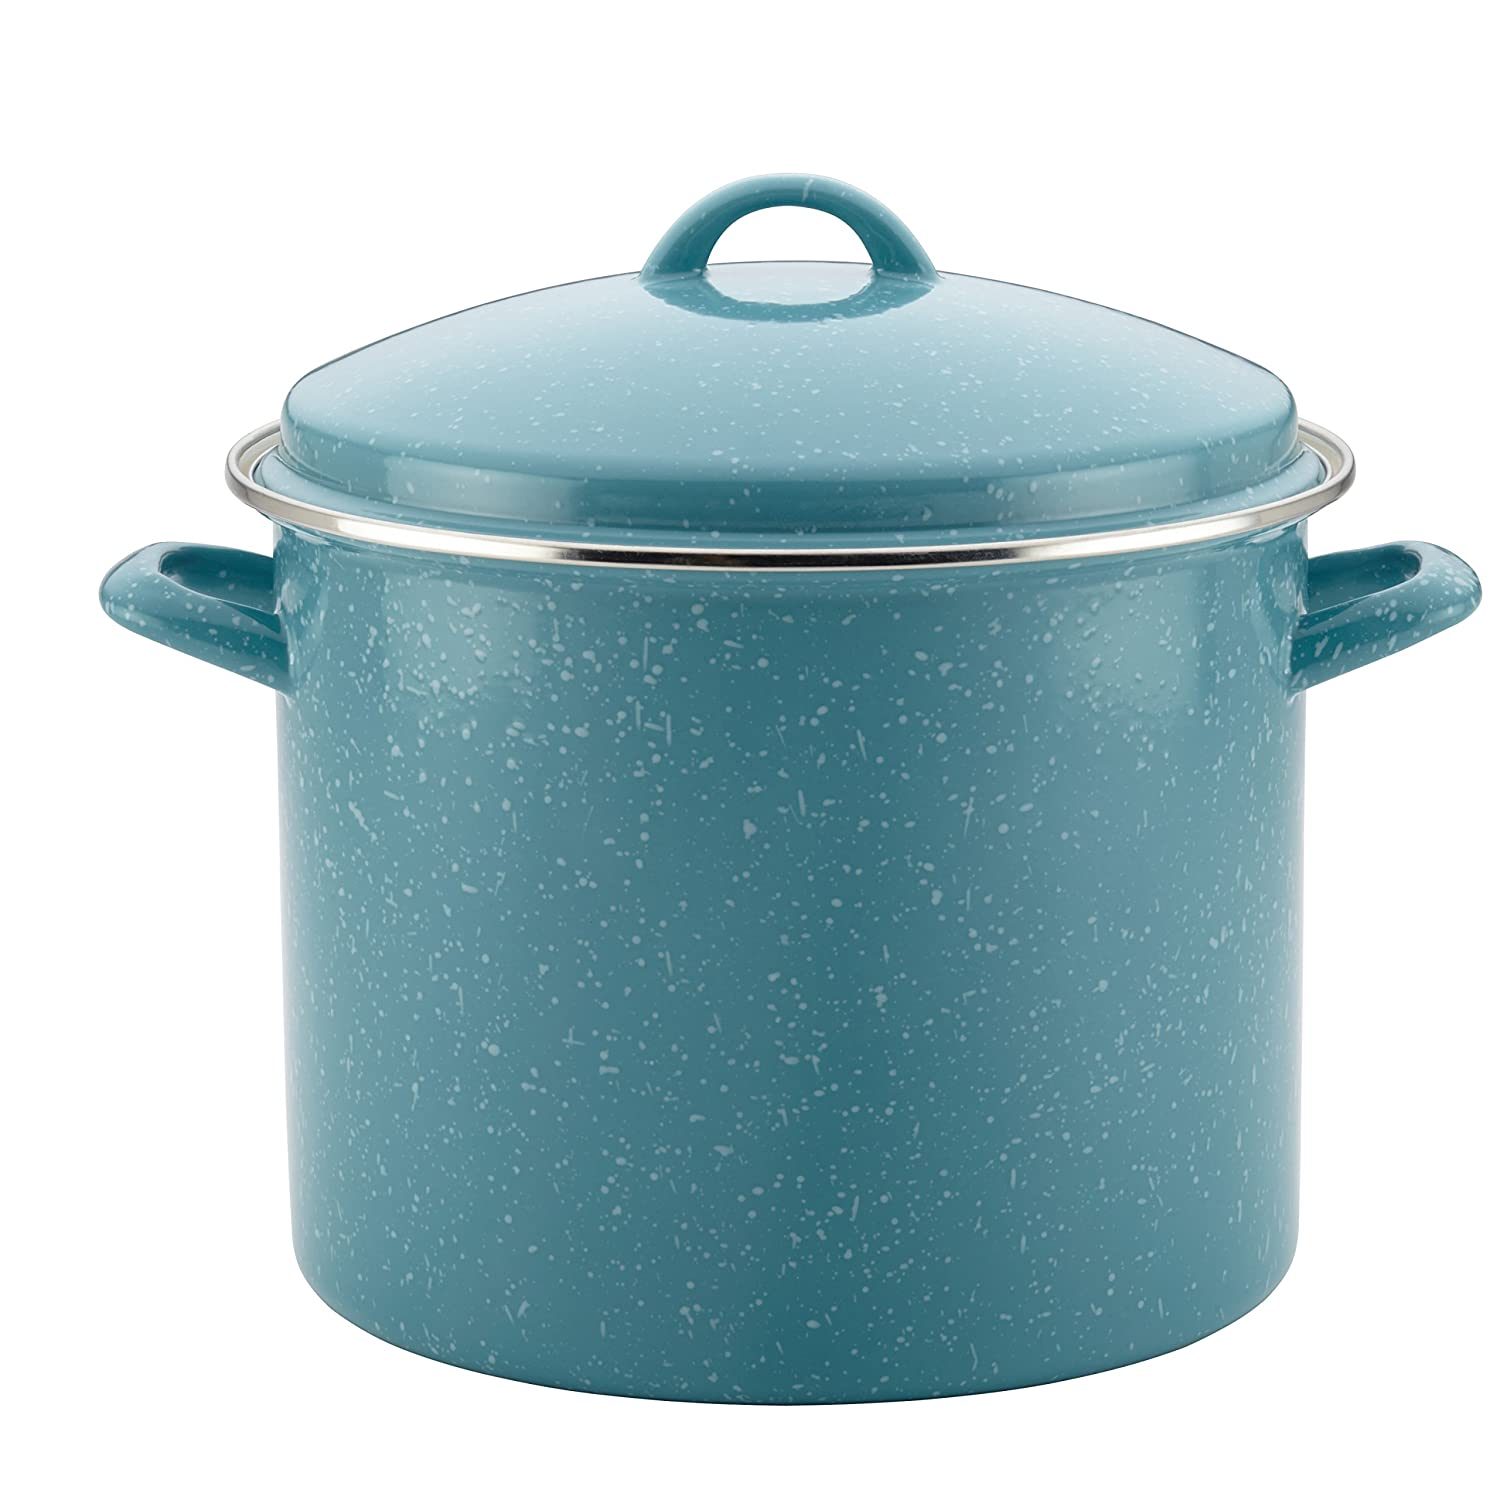 Paula Deen Enamel on Steel 12-Quart Covered Stockpot, Gulf Blue Speckle